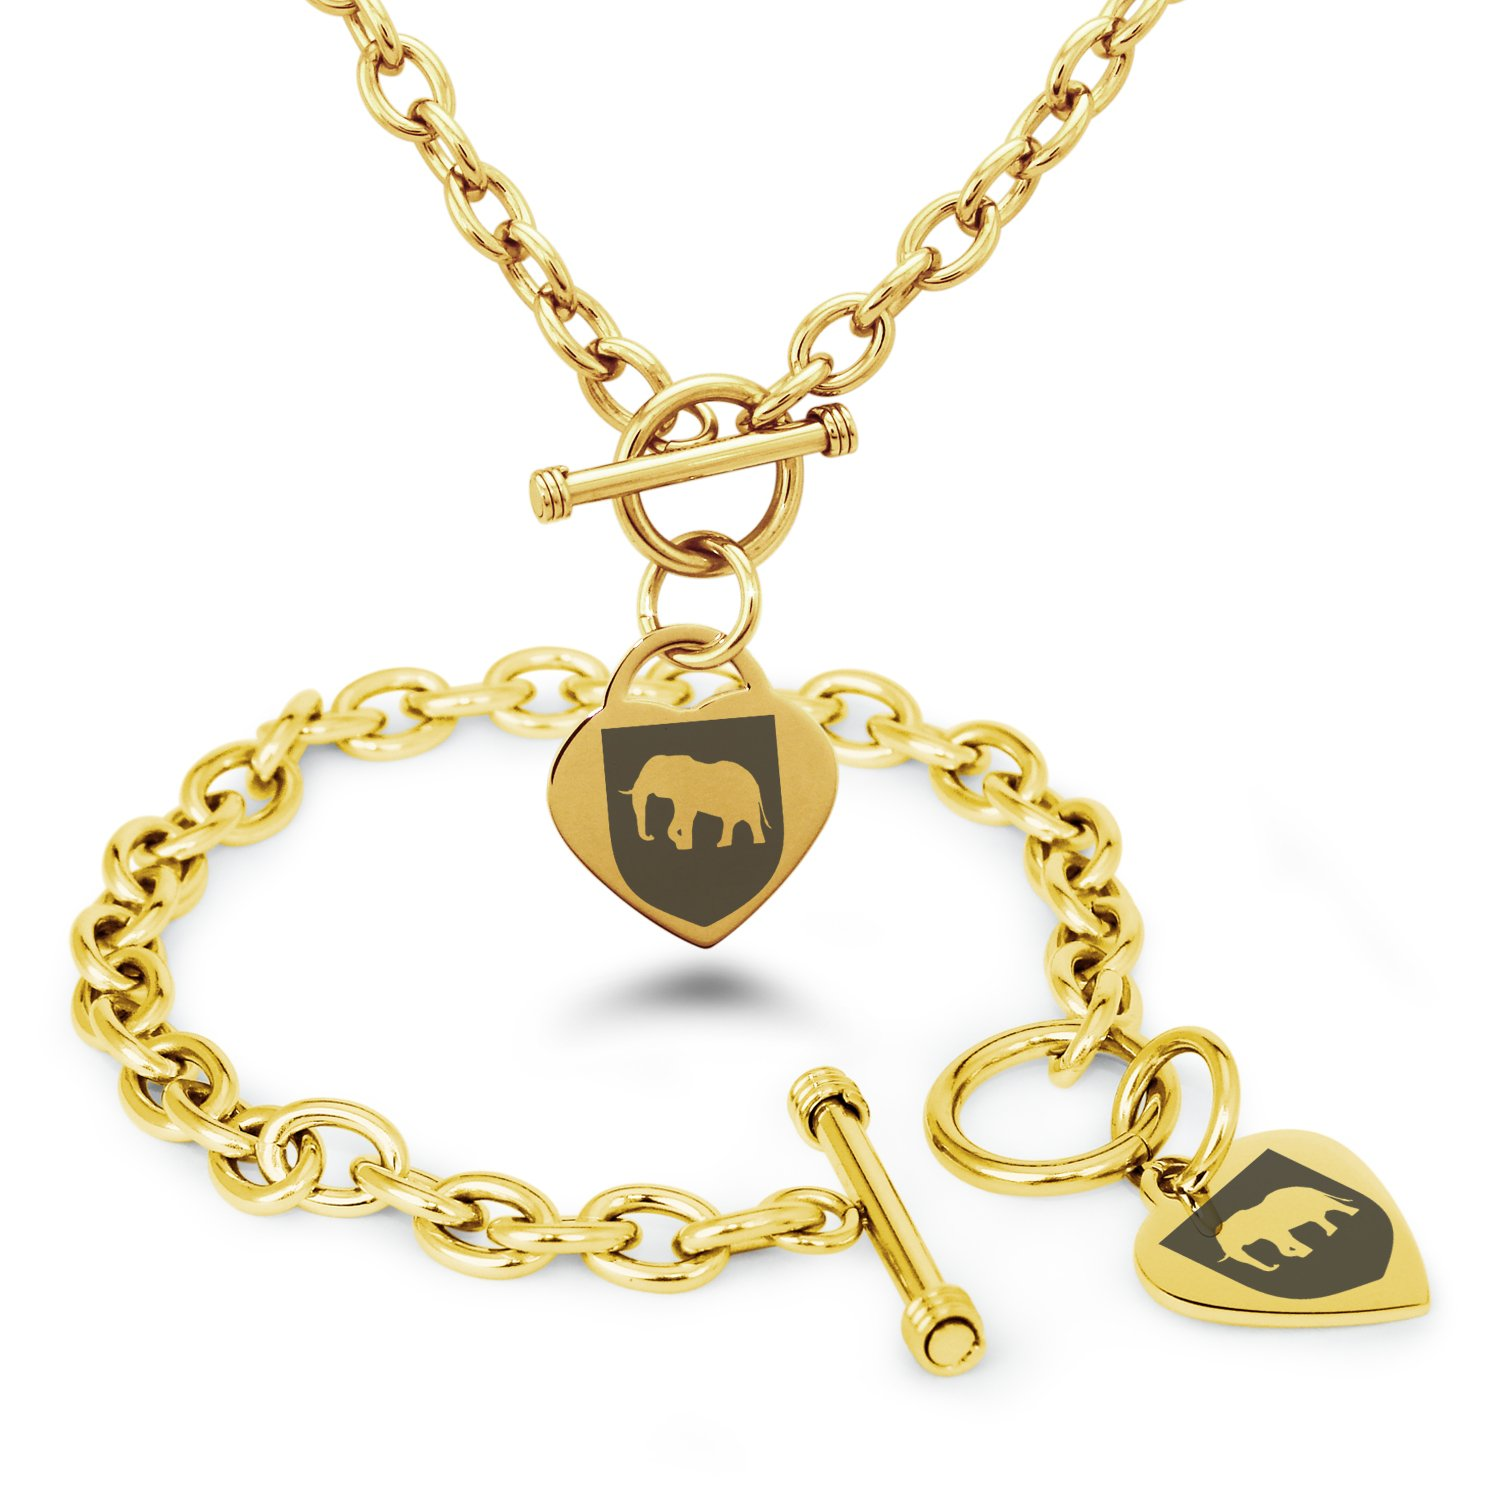 Tioneer Gold Plated Stainless Steel Elephant Strength Coat of Arms Shield Symbols Heart Charm, Bracelet & Necklace Set